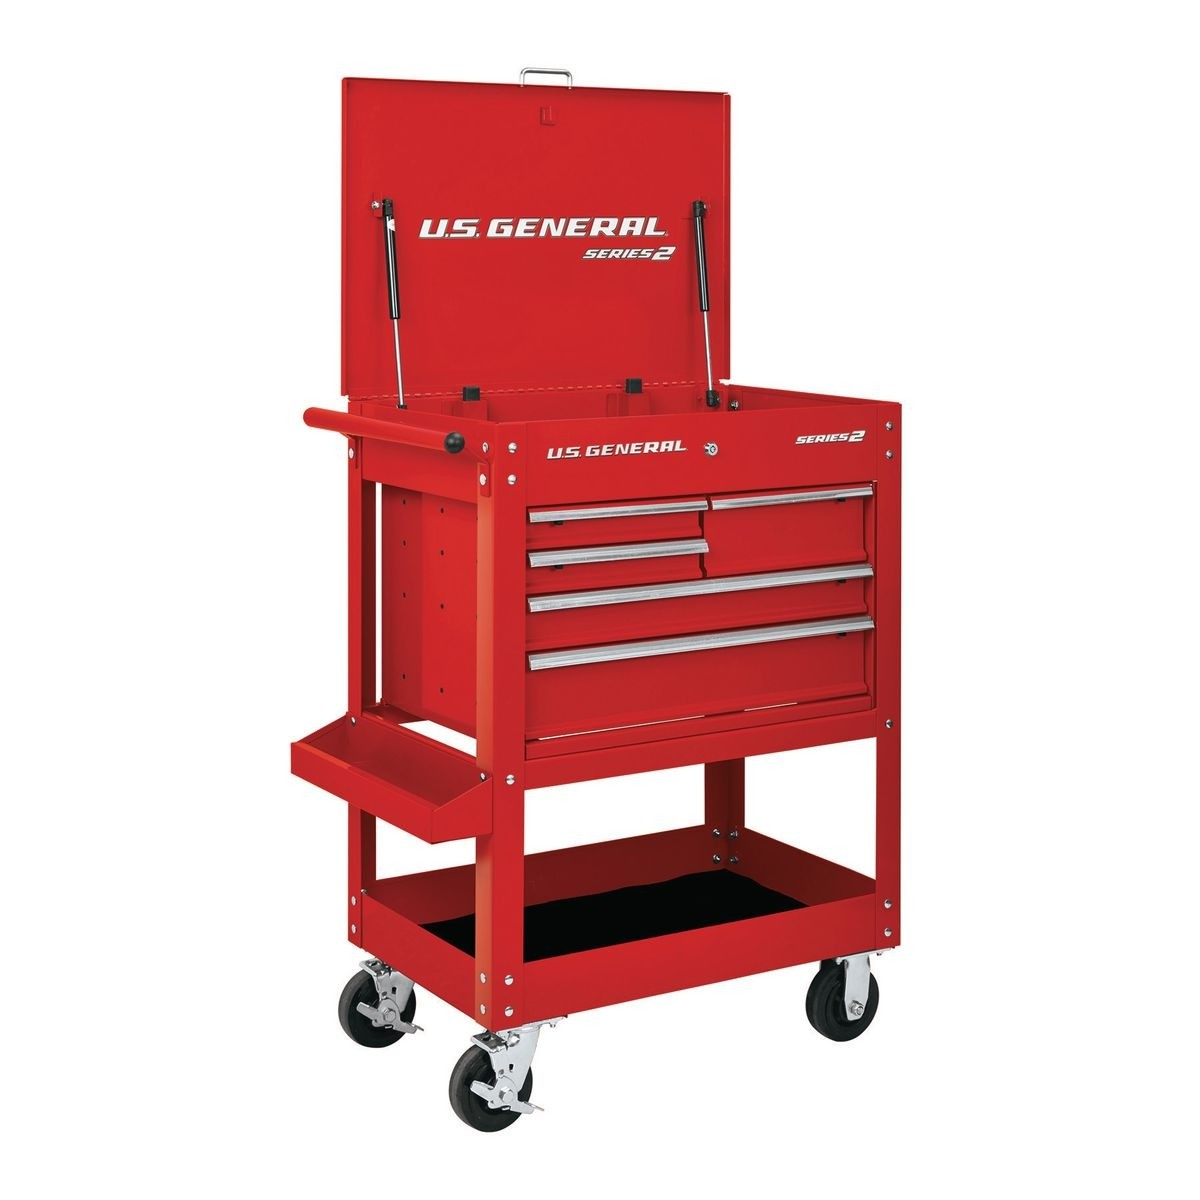 U.S. GENERAL 30 In. 5 Drawer Mechanic's Cart – Red – Item 64061 / 64060 / 64059